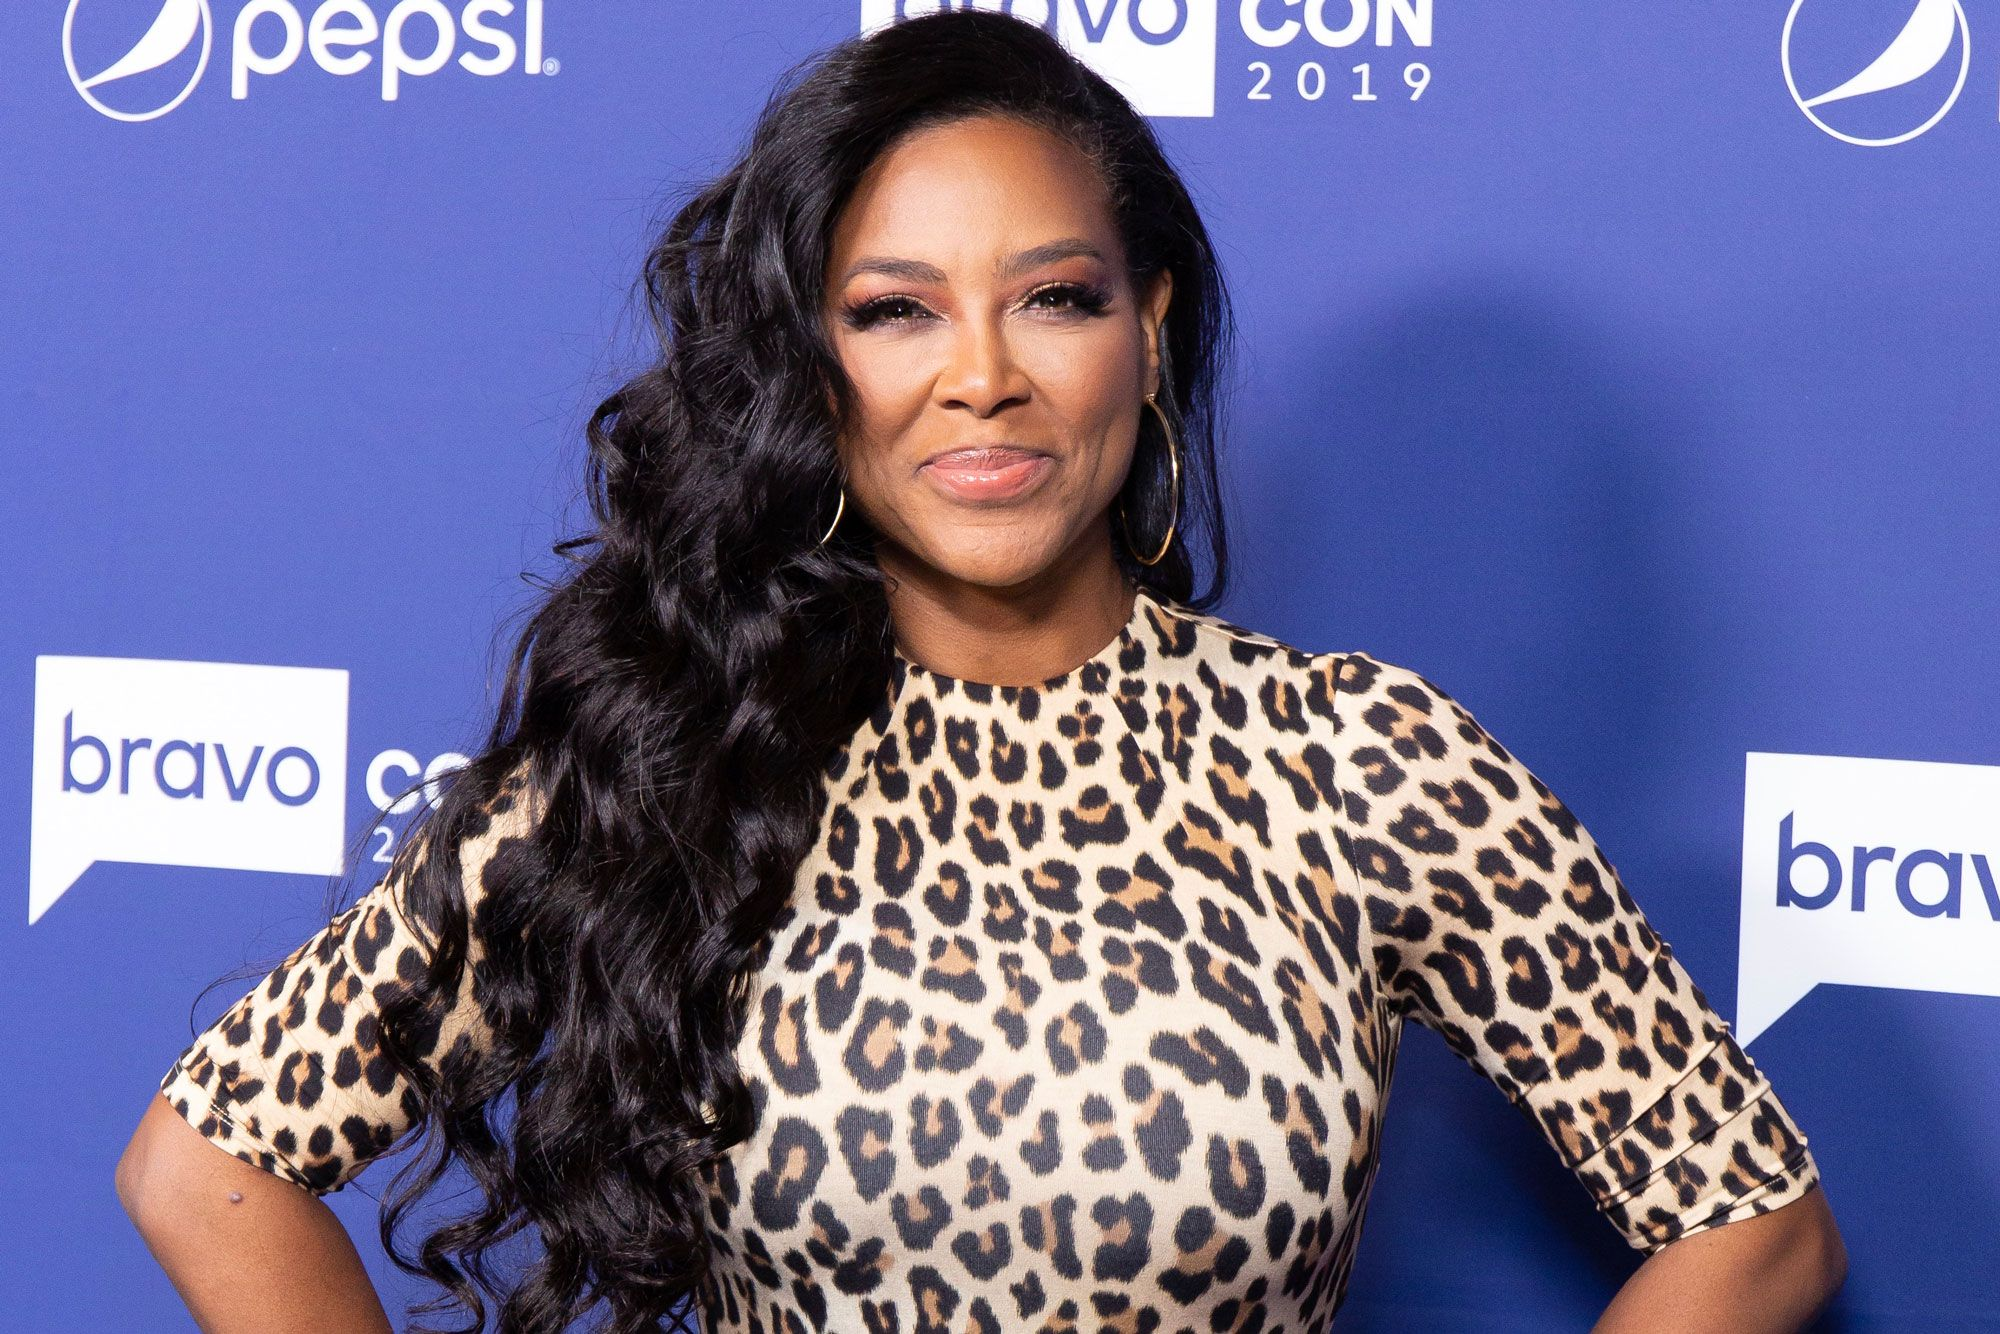 kenya-moore-breaks-the-internet-she-drops-her-clothes-for-this-pic-and-has-fans-in-awe